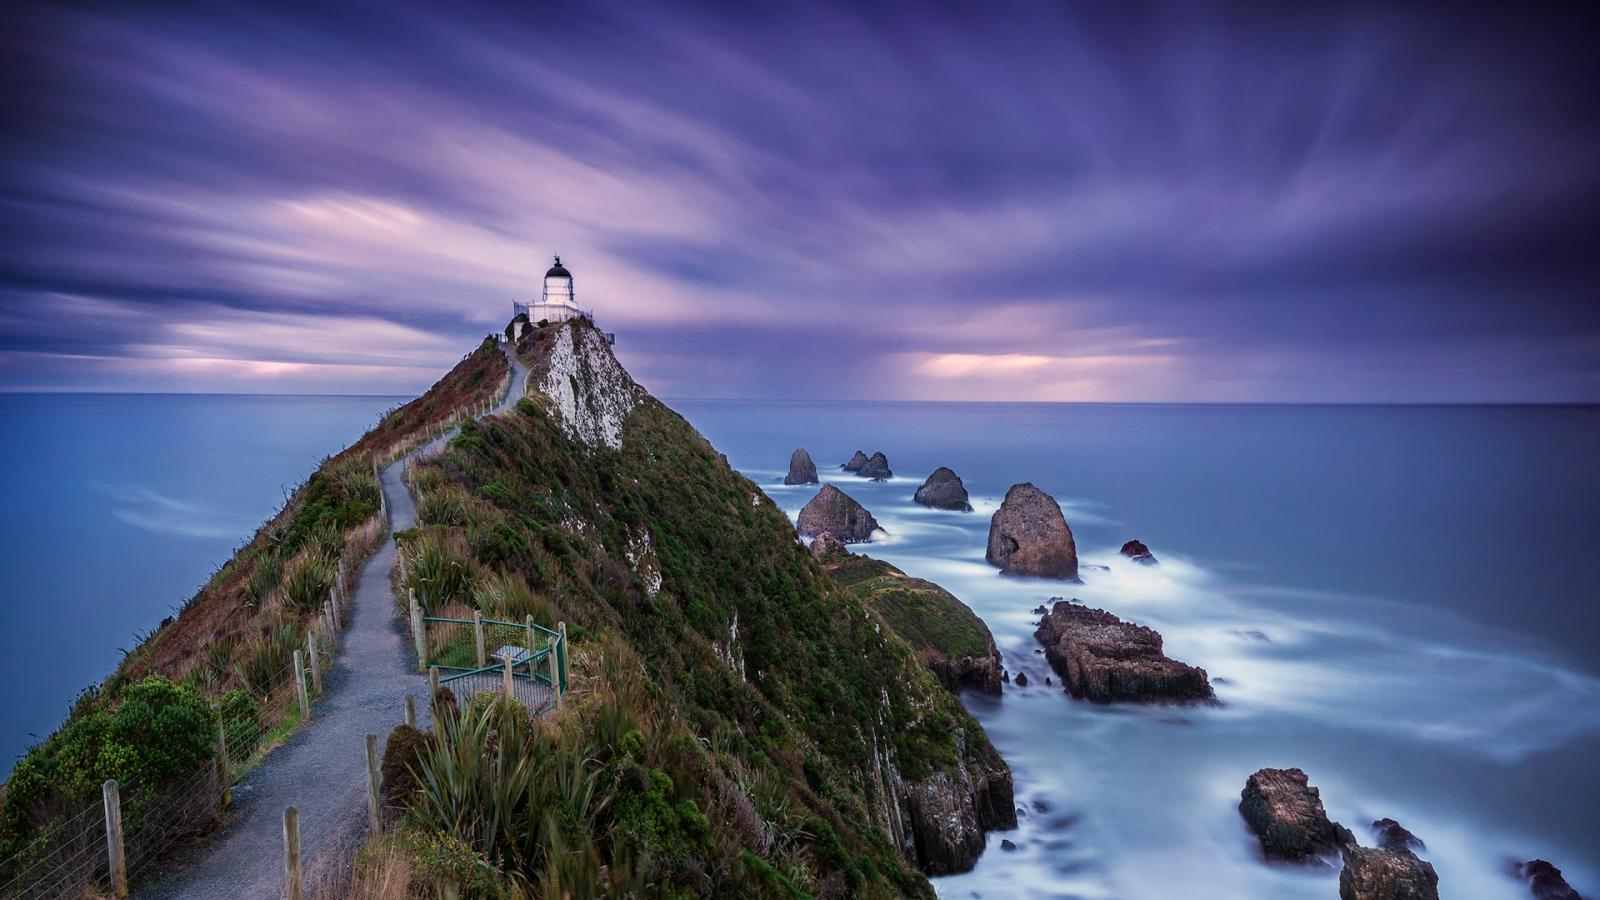 Motivational Quotes Wallpapers Free Download Long Exposure Photo Of Nugget Point Lighthouse New Zealand